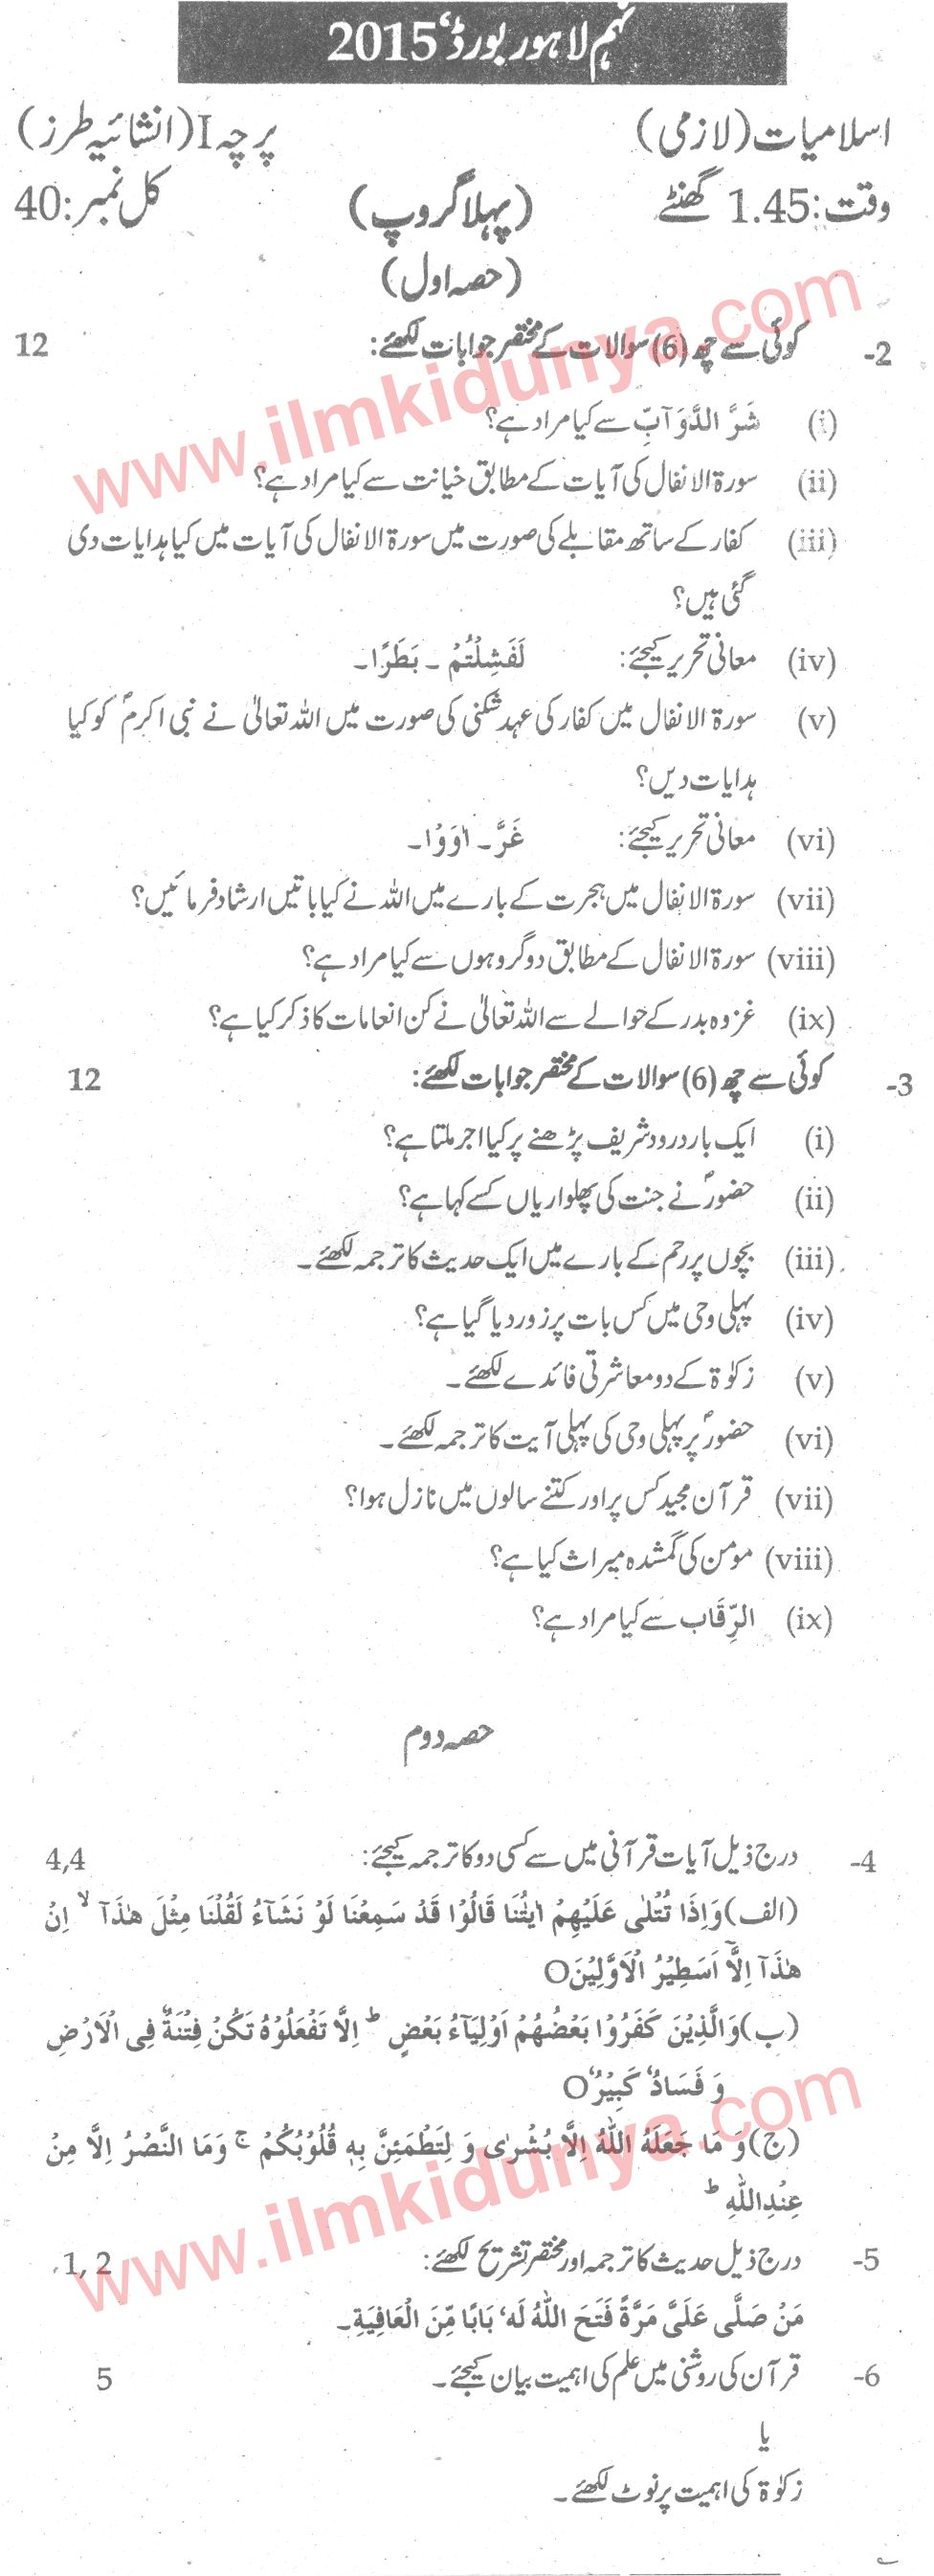 past papers 2015 lahore board 9th class islamiat subjective group 1 urdu medium